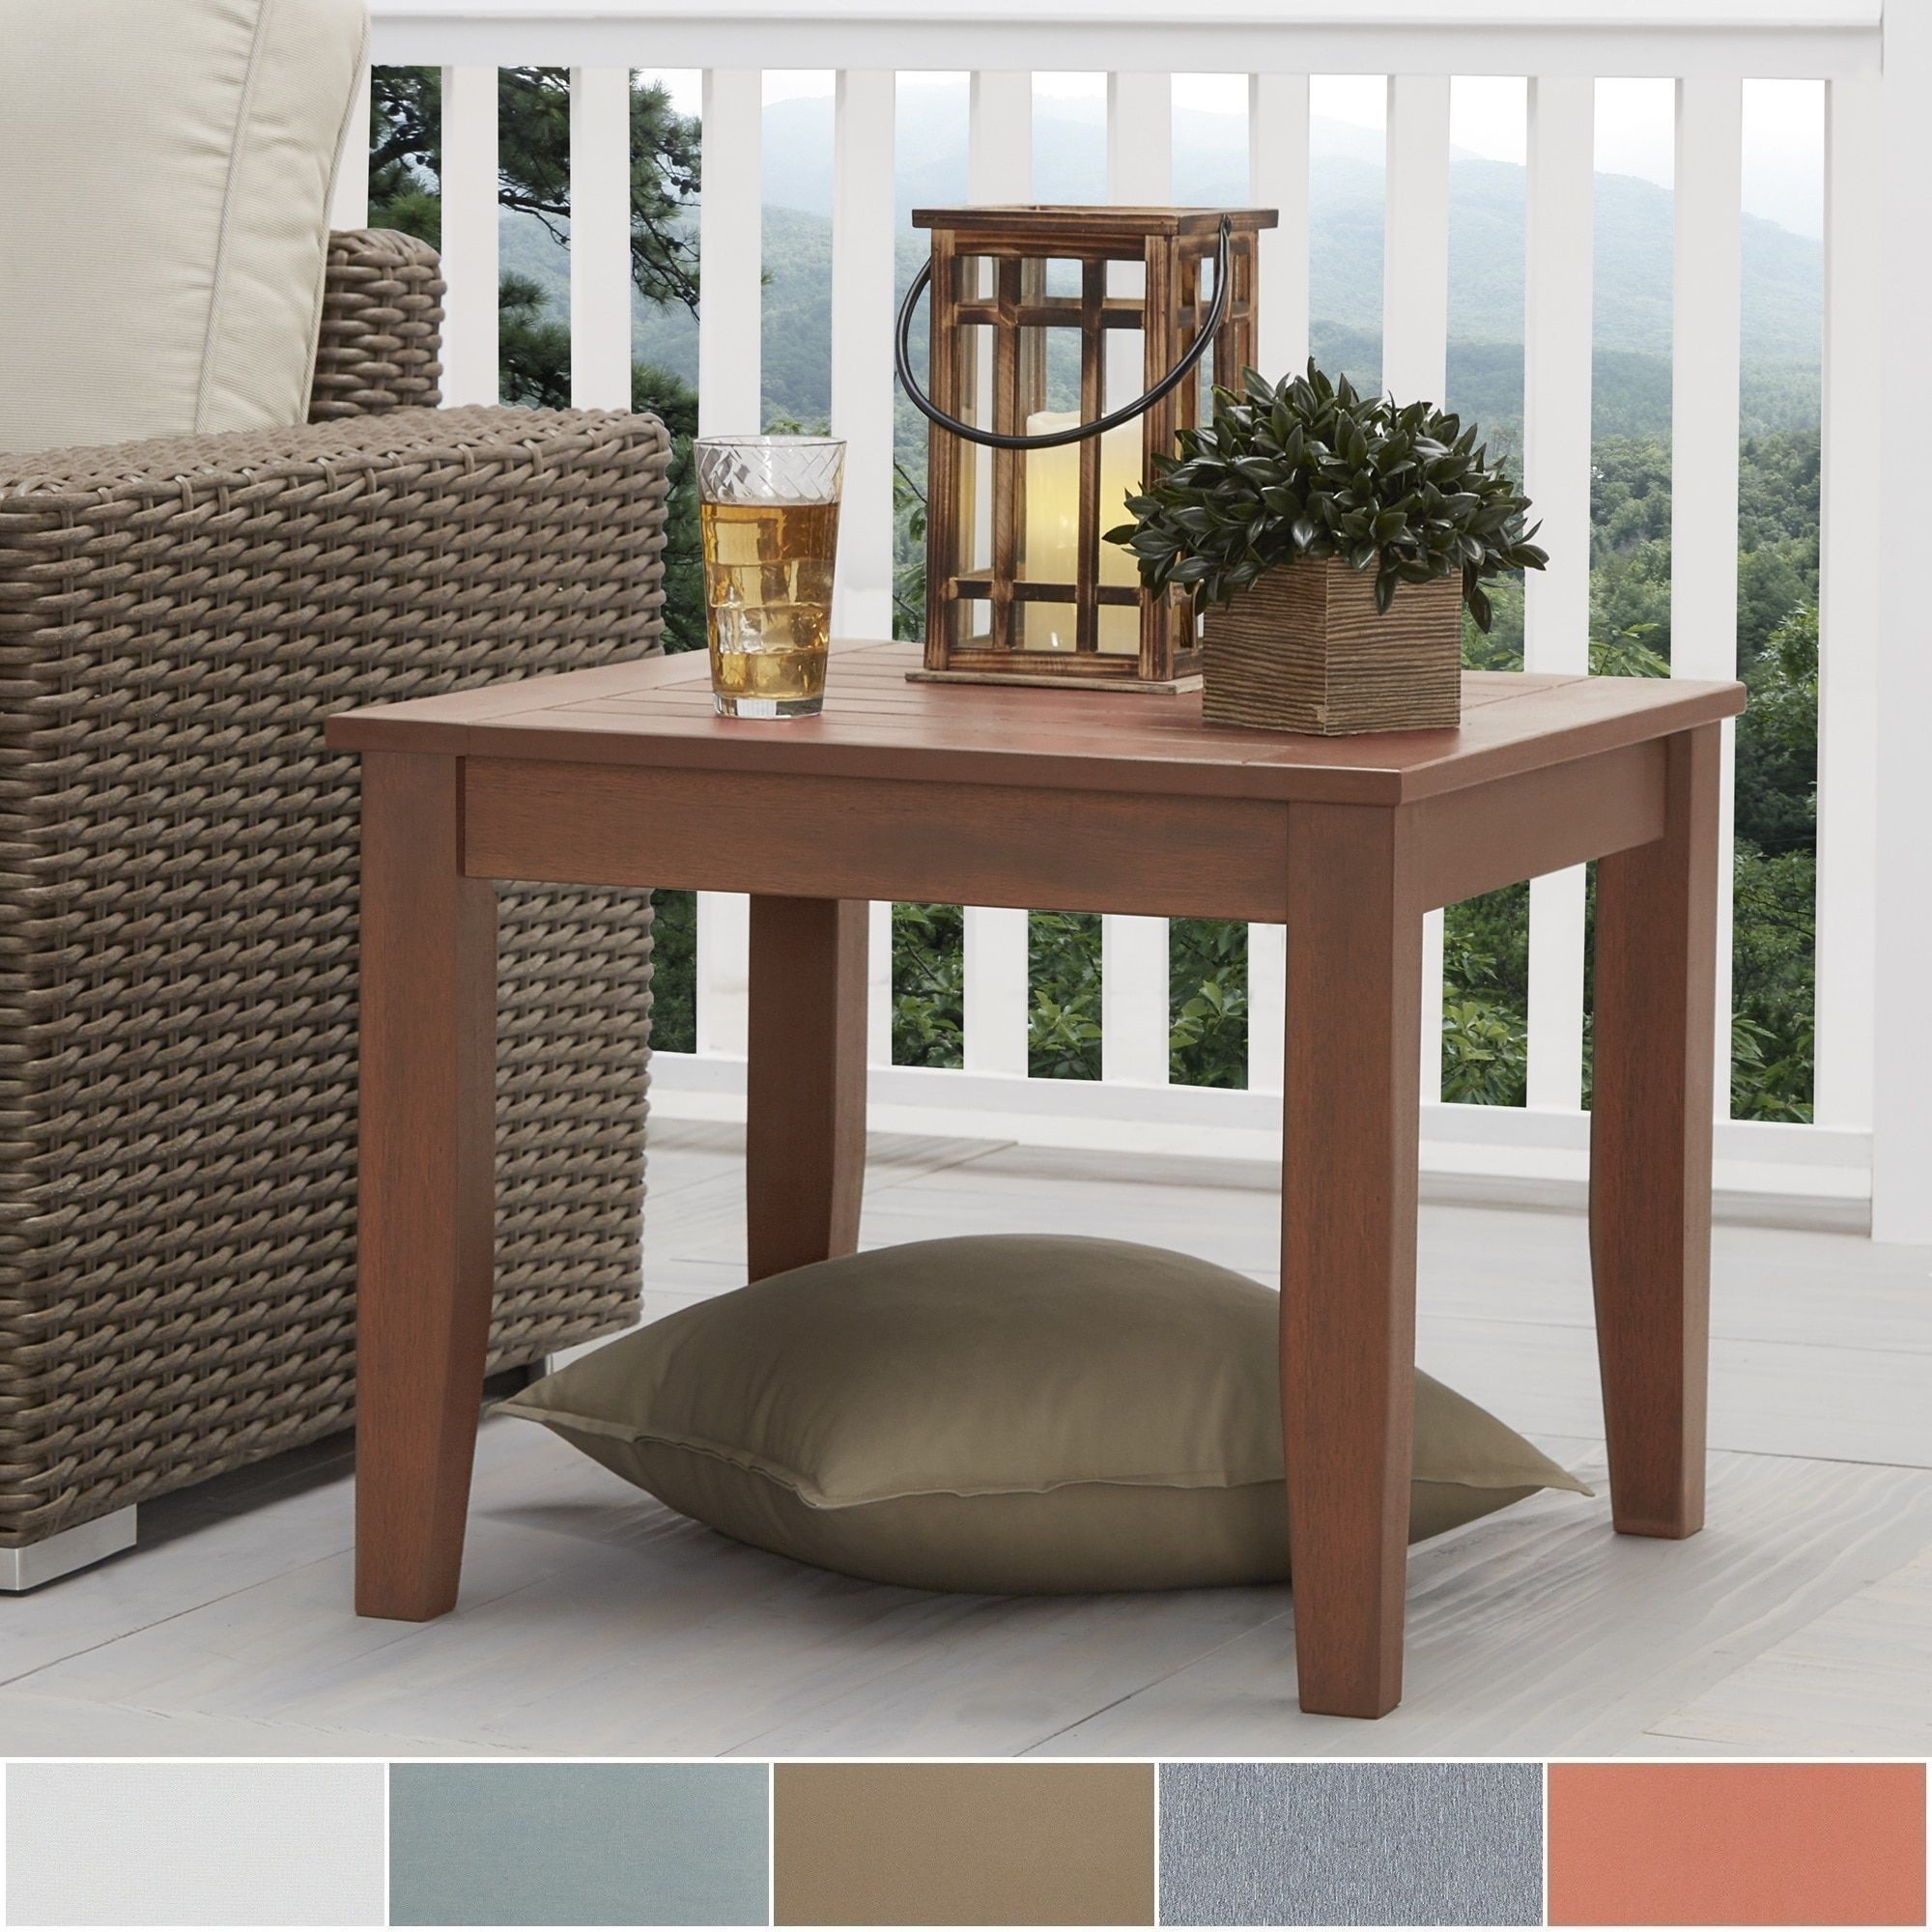 Yasawa Wood Patio Cushioned Accent Ottoman Side Table - Brown by ...